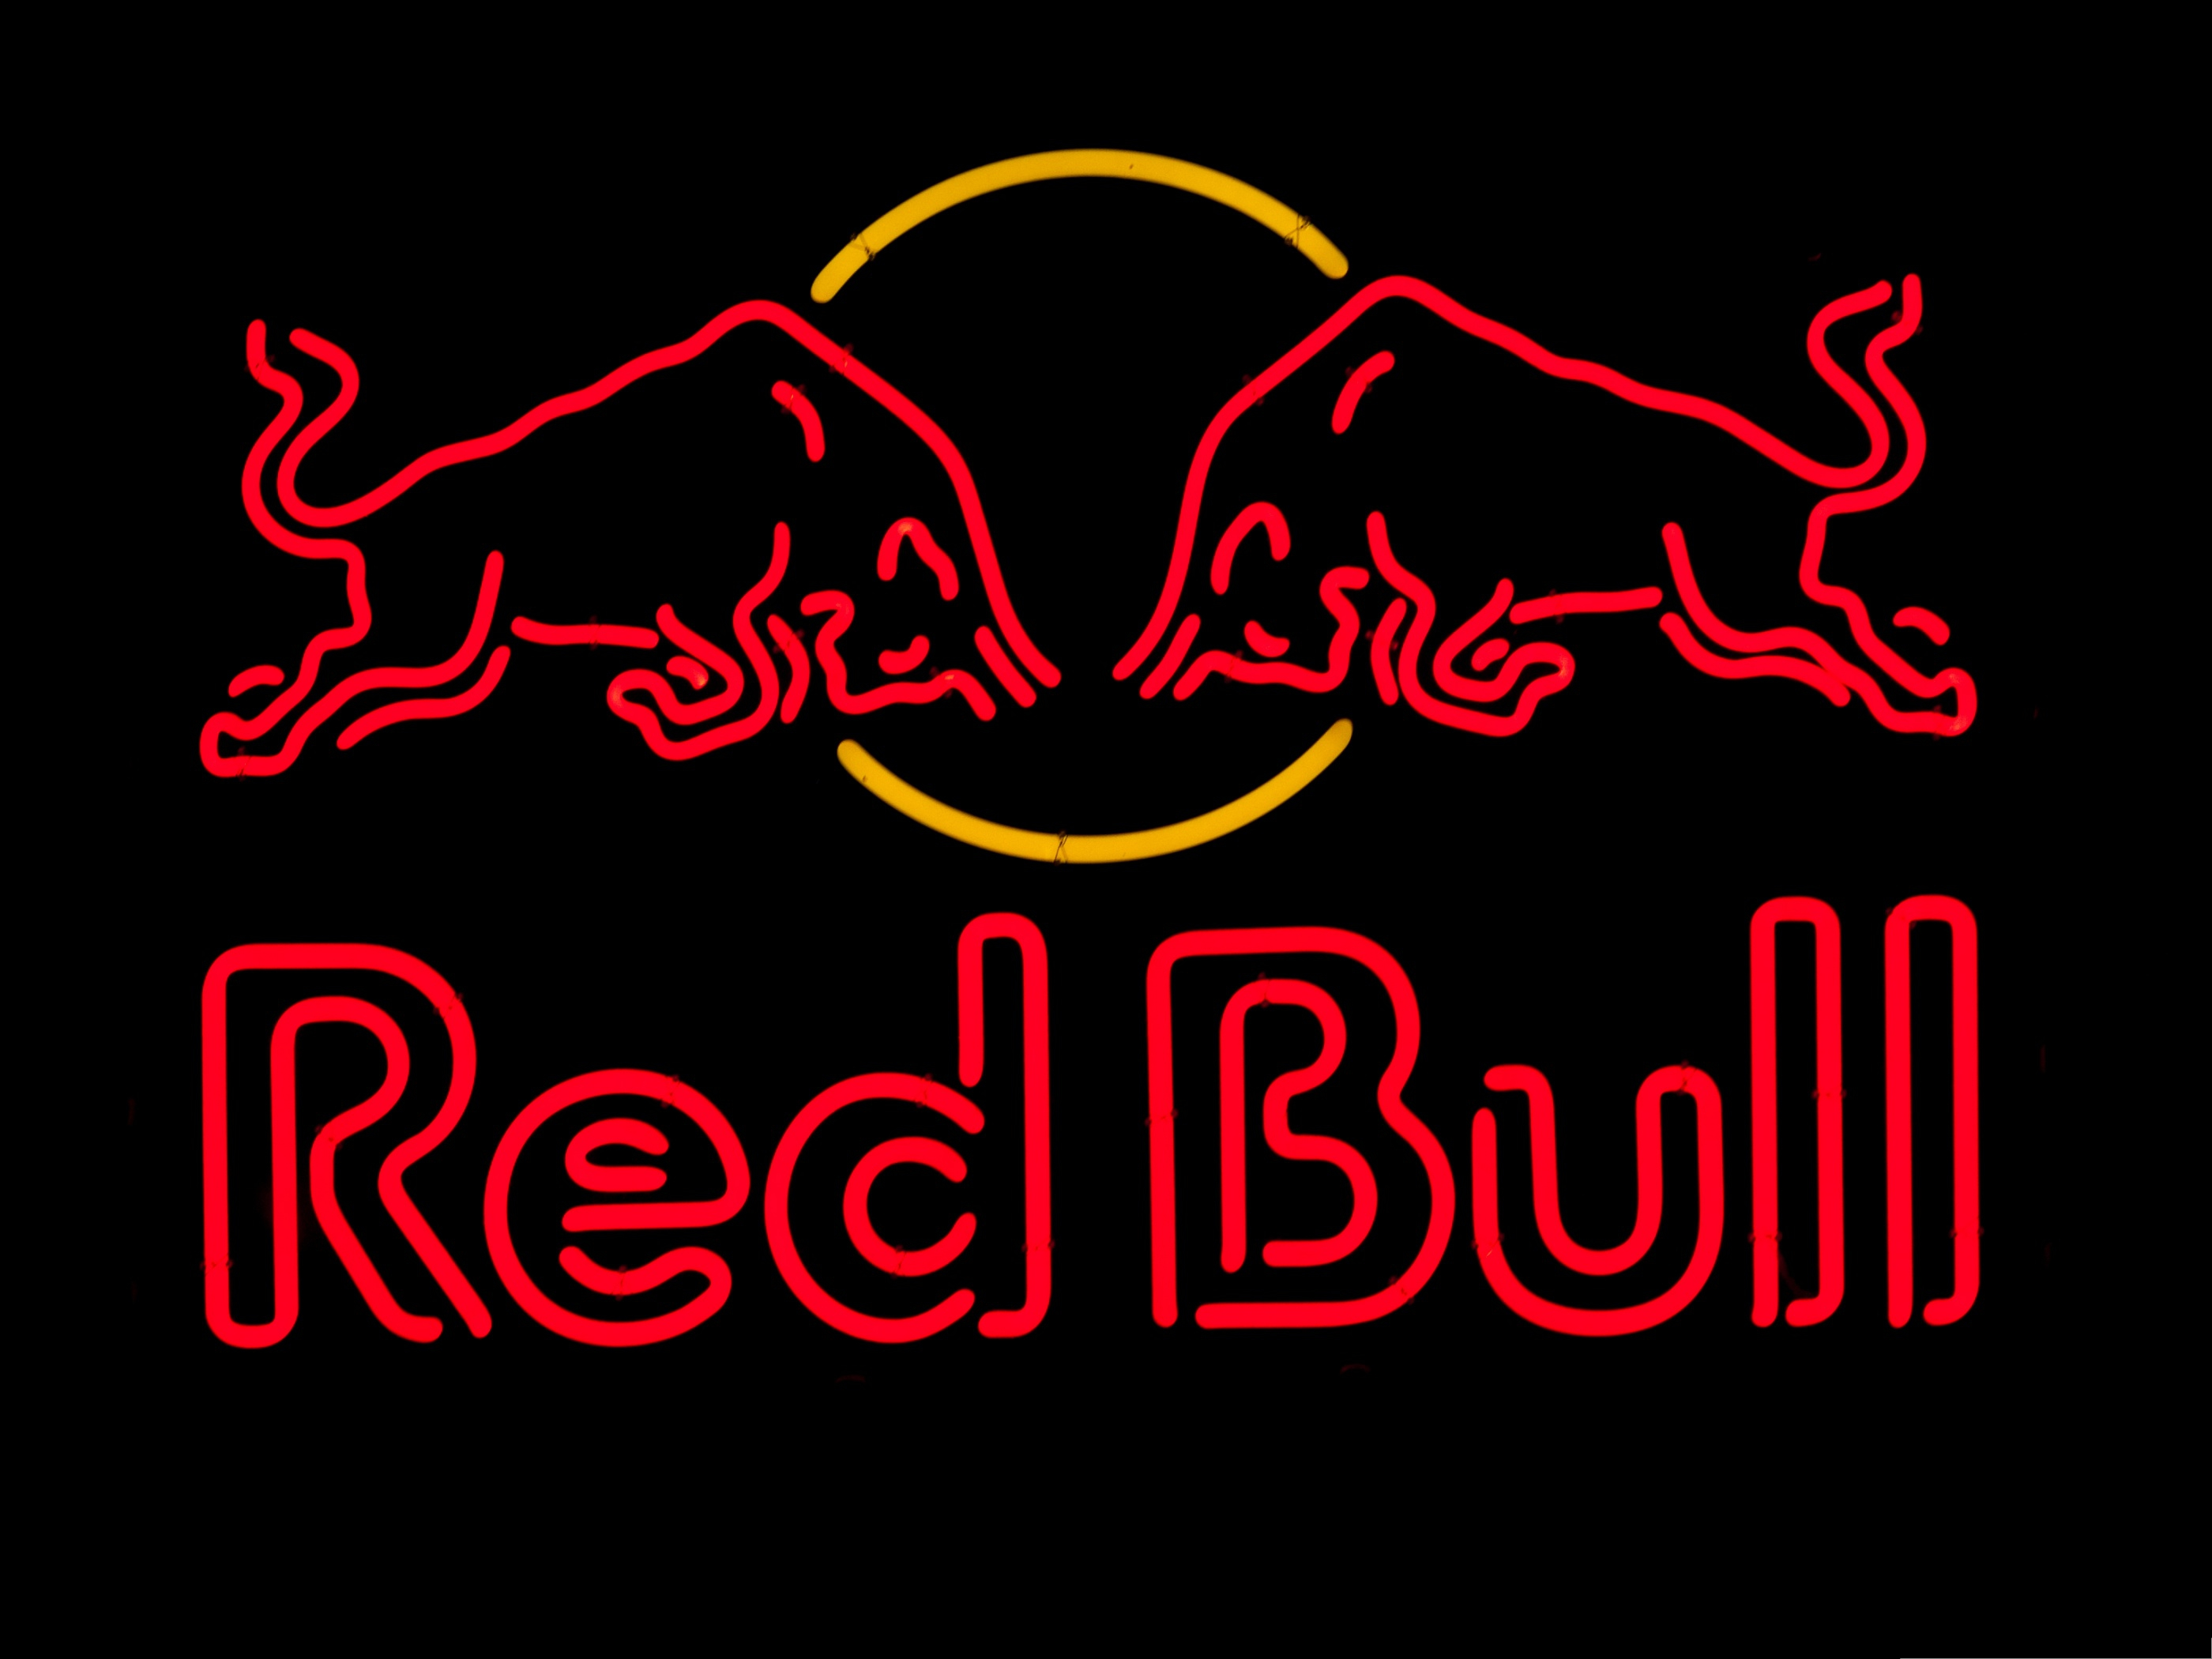 click to free download the wallpaper--Wallpaper Desktop Computer - Red Bulls Meeting Each Other, Head Facing Head 2800X2100 free wallpaper download